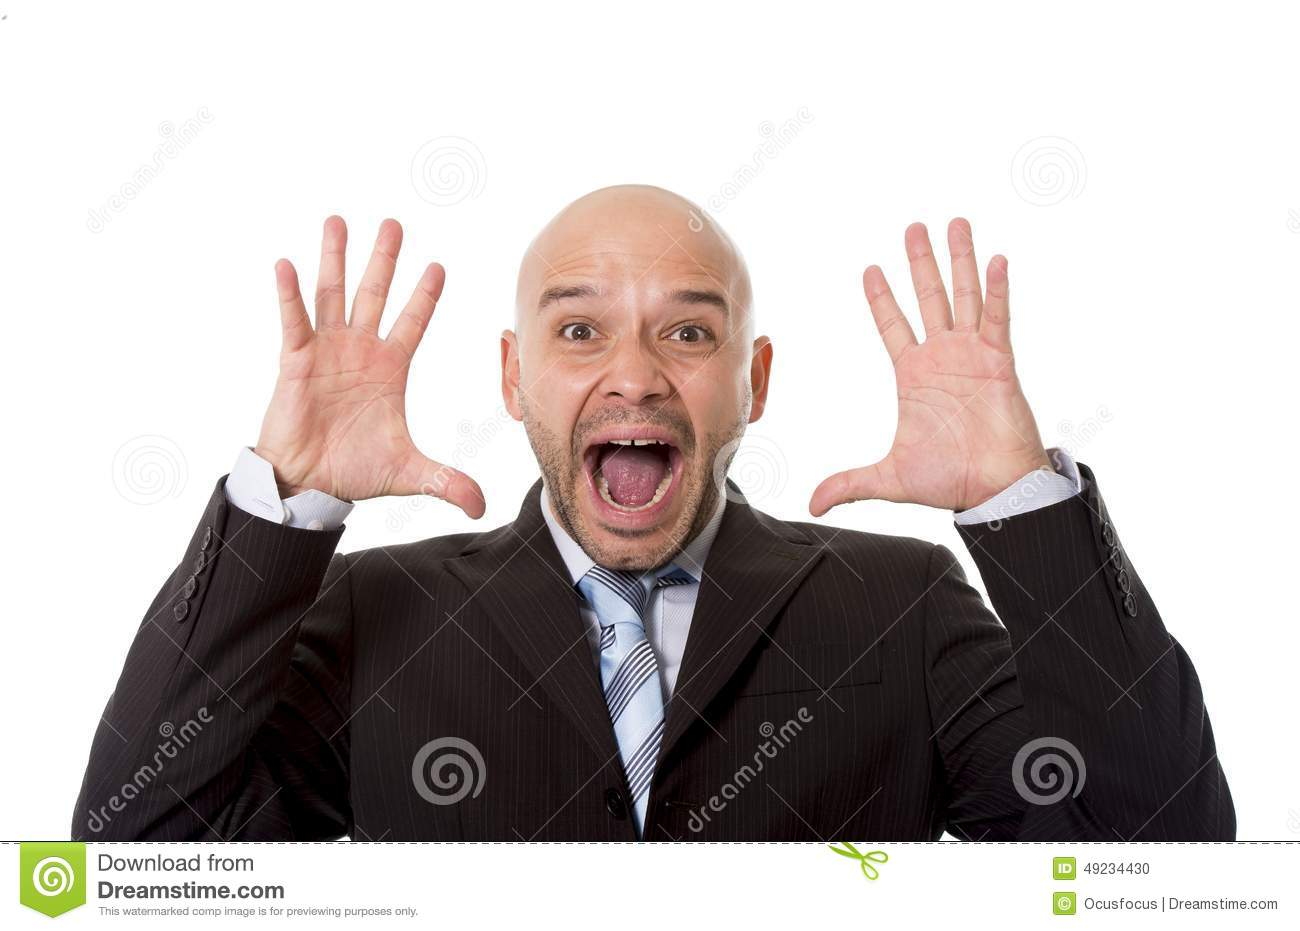 Desperate Brazilian bald businessman screaming and shouting crazy stress with mad face expression in overwork concept